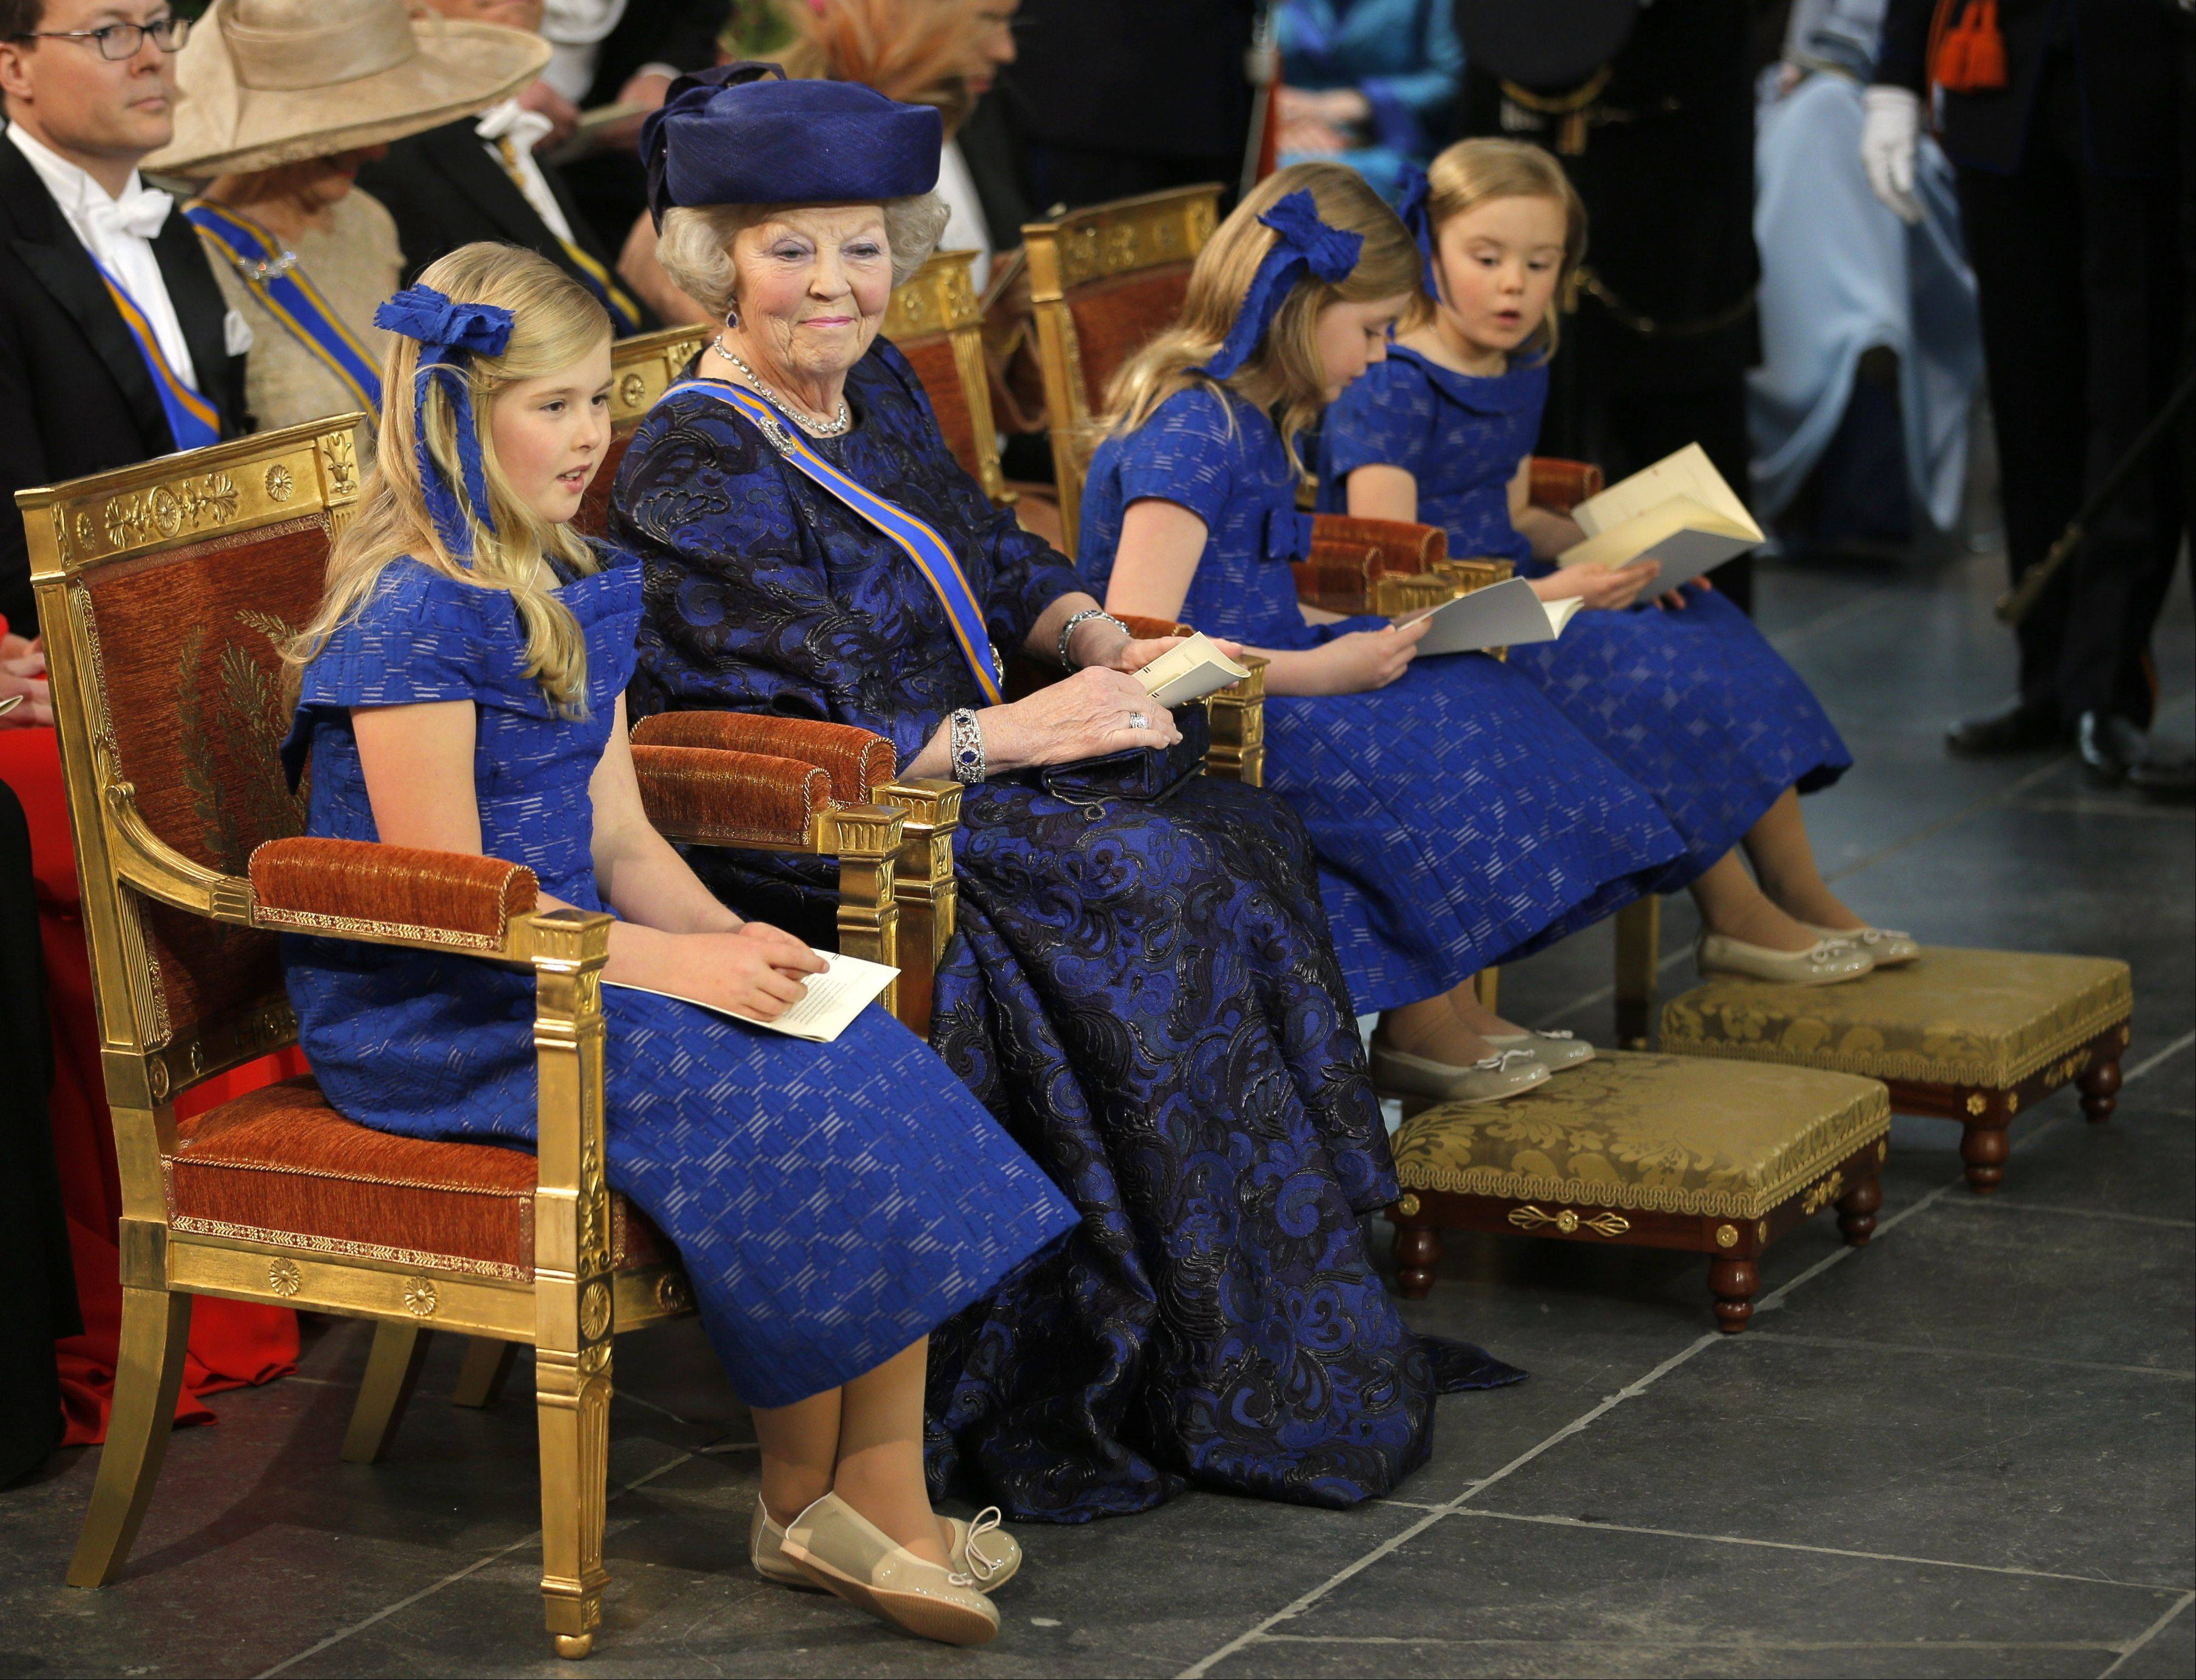 Dutch Princess Beatrix, center left, is joined by the children of Dutch King Willem-Alexander and his wife Queen Maxima, from left: Catharina-Amalia, Alexia and Ariane at the Nieuwe Kerk or New Church in Amsterdam, The Netherlands, prior to the inauguration of King Willem-Alexander, Tuesday April 30, 2013.